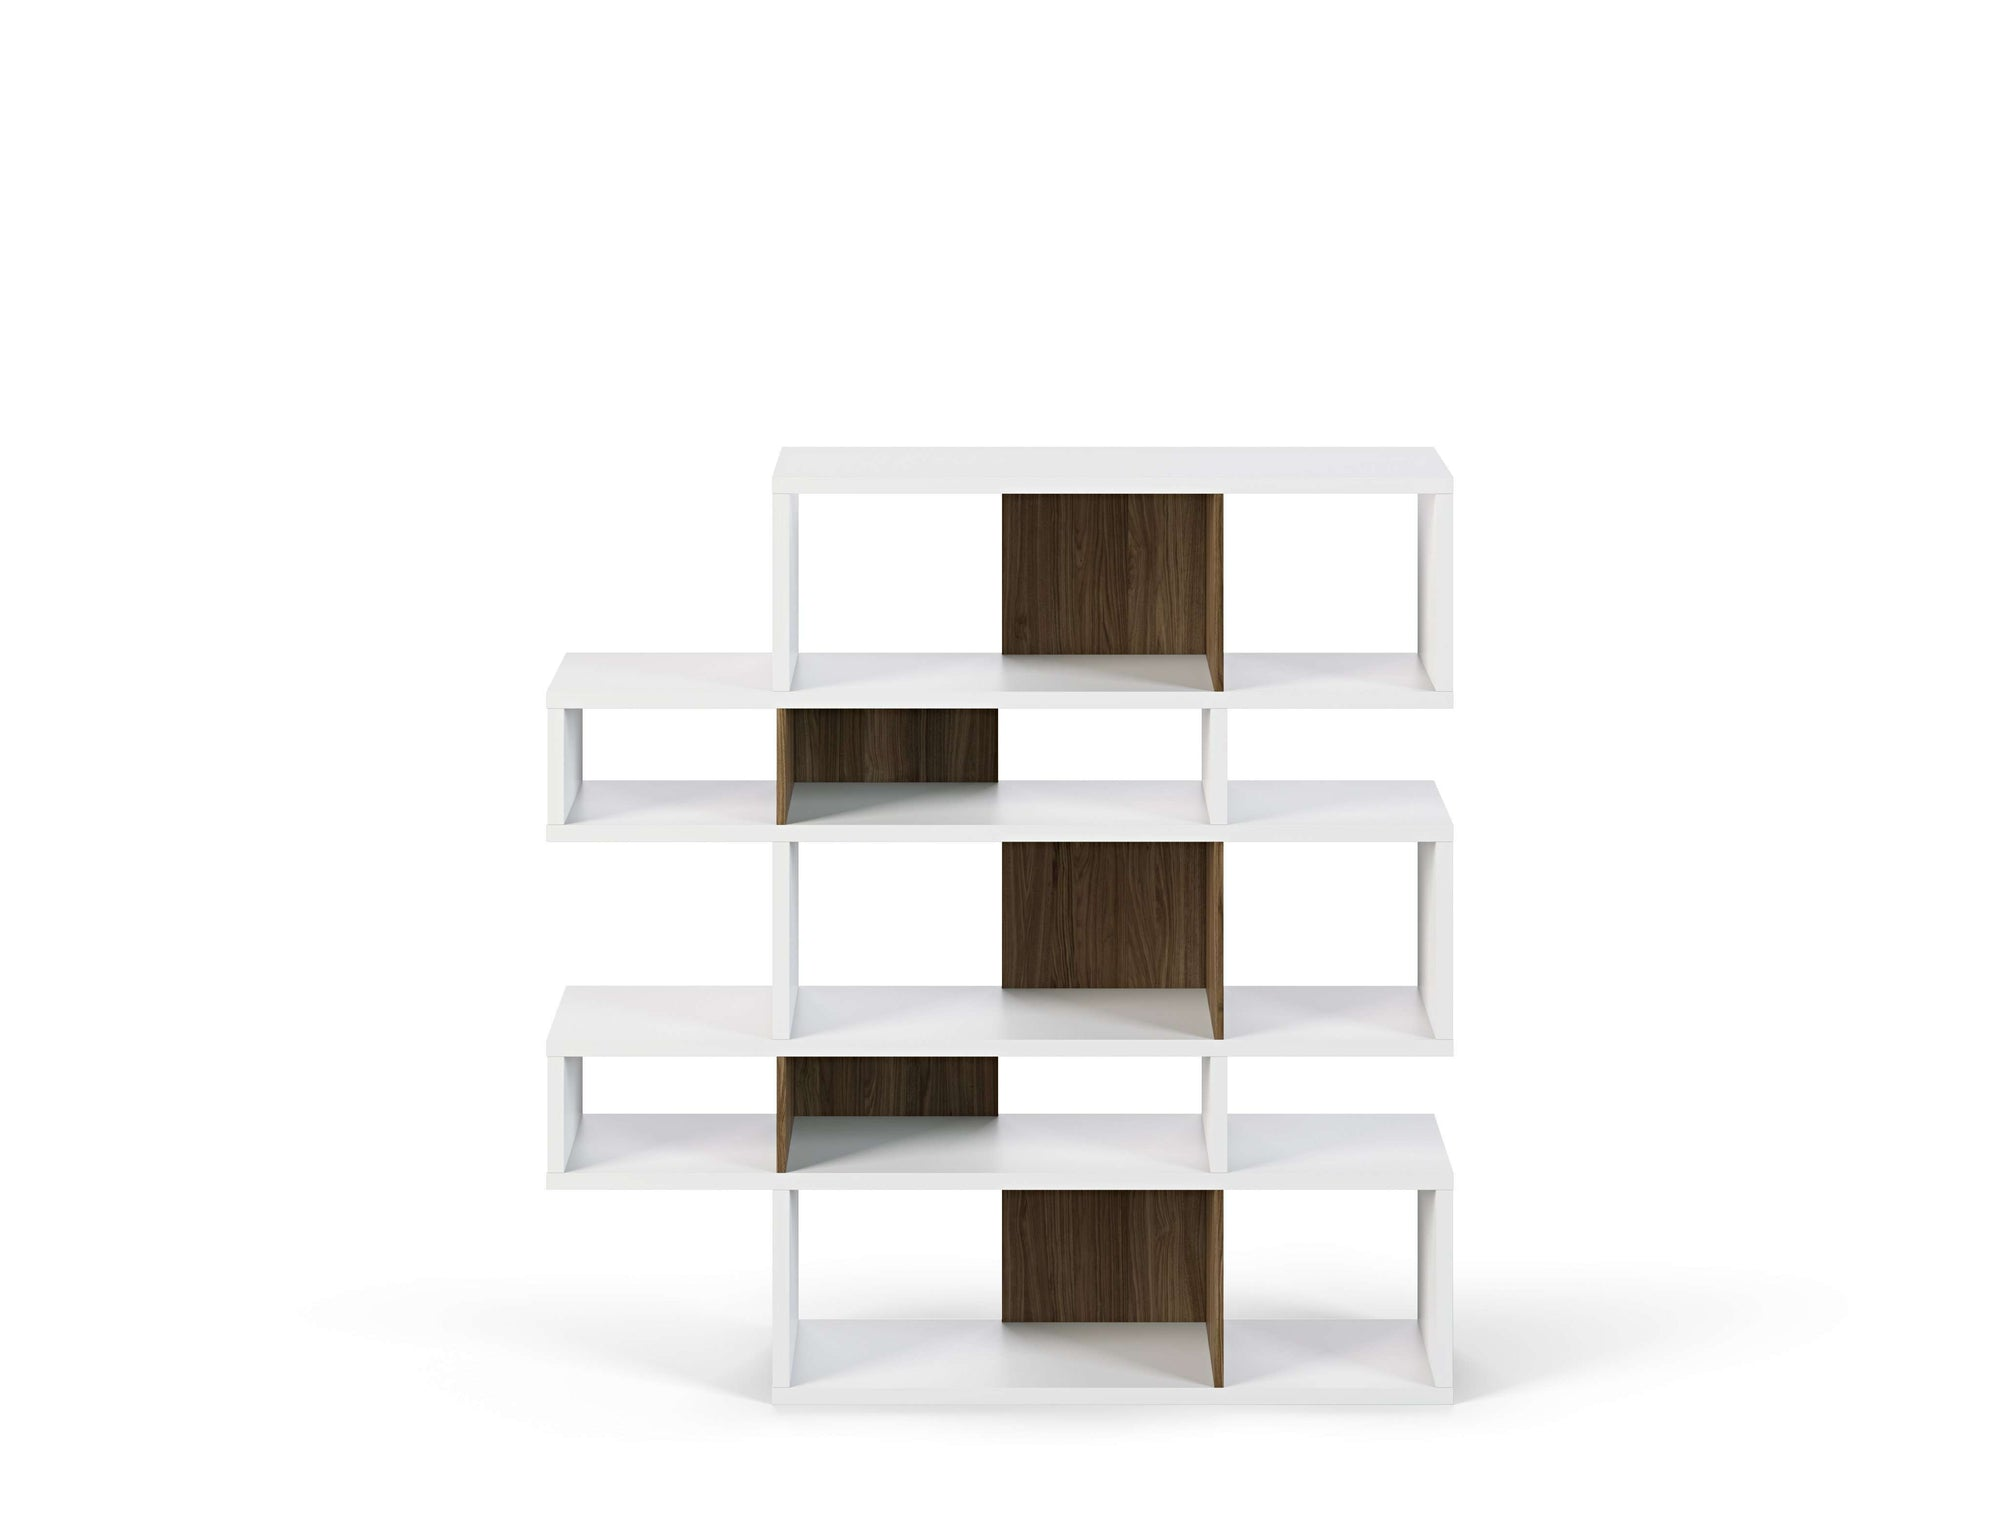 Tema Home-London Composition 2010-002 098020-LONDON2-Shelf-MODTEMPO